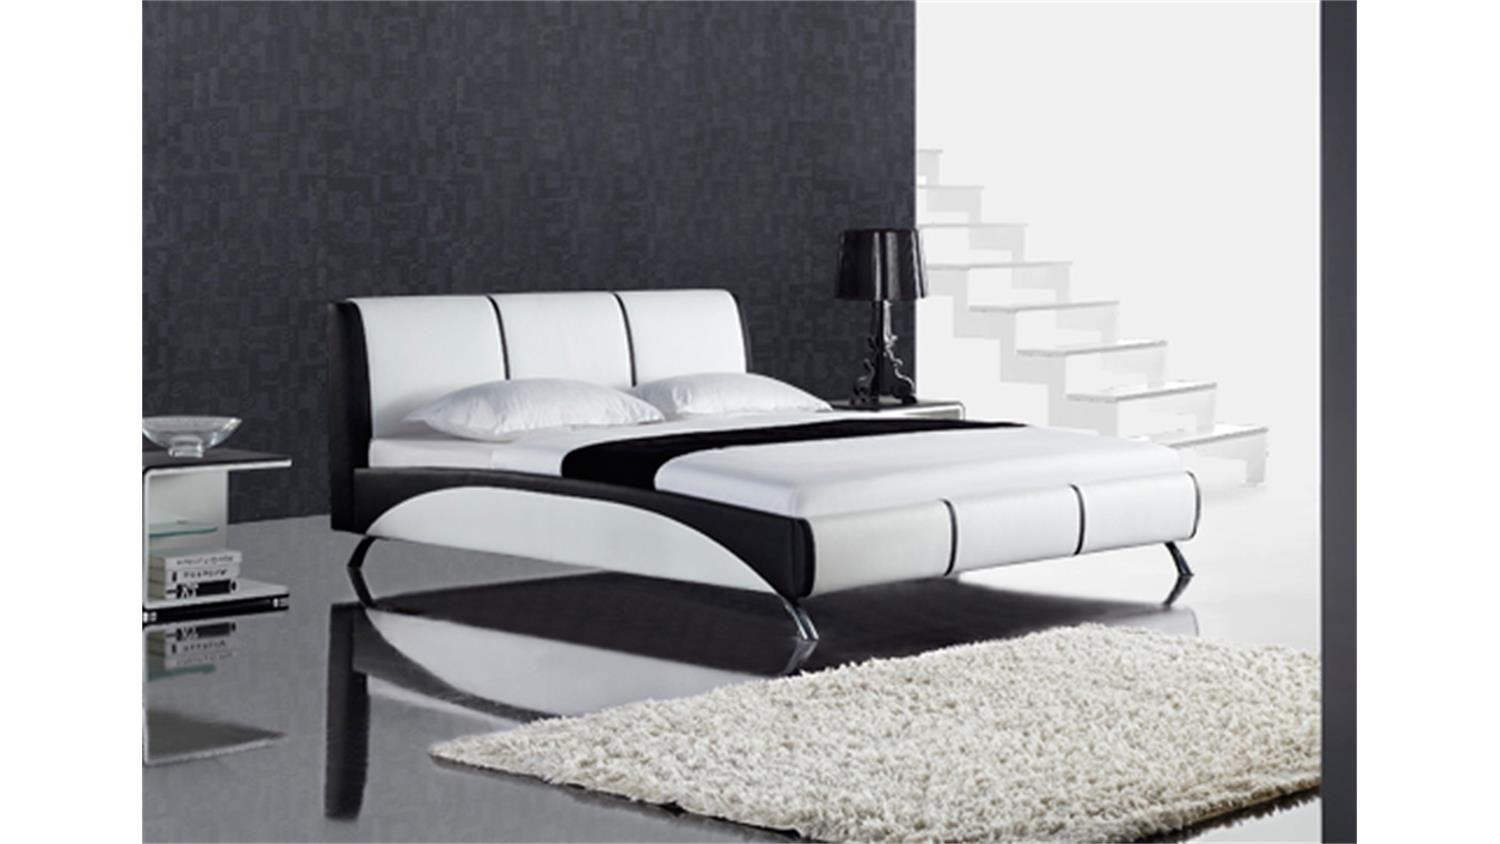 polsterbett fun designer bett 180x200 schwarz wei. Black Bedroom Furniture Sets. Home Design Ideas